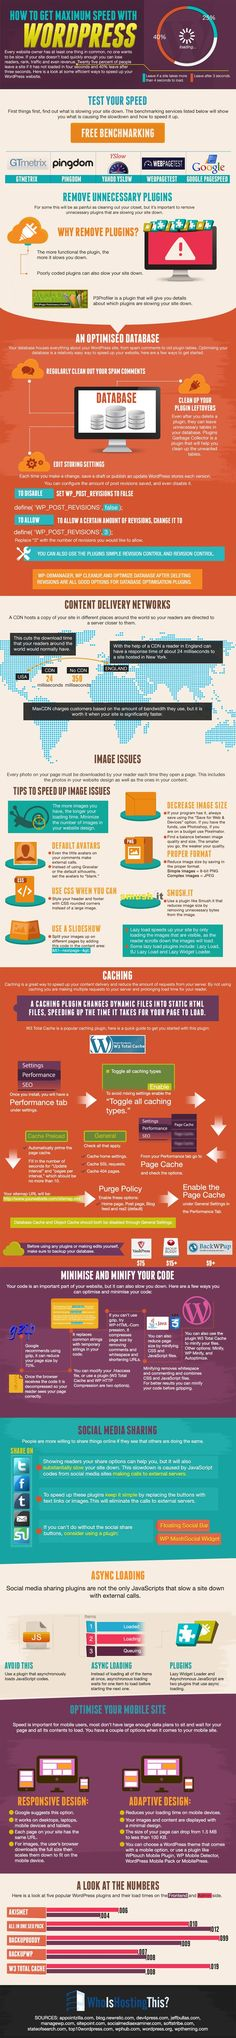 Speed Up Your WordPress Hosting Blog to get a higher Google rank #infographic